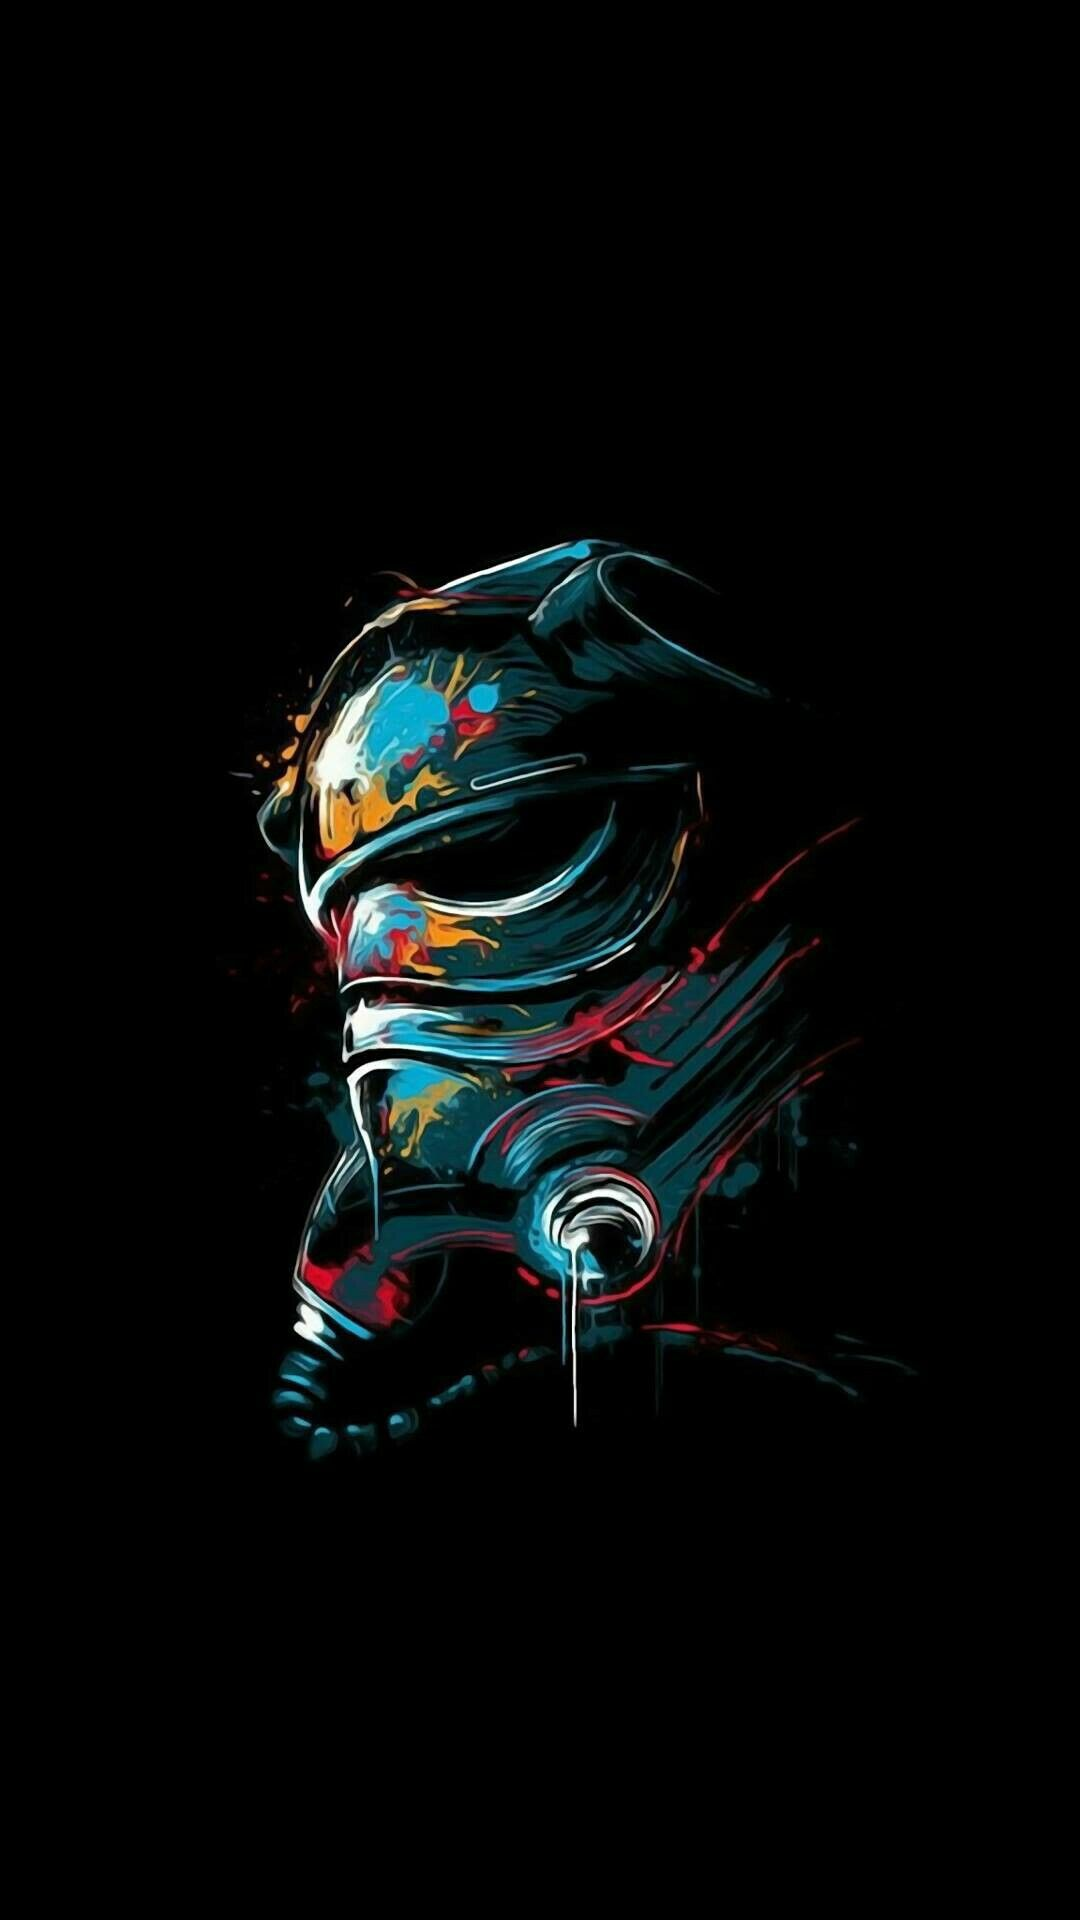 Pin By W White On Phone Backgrounds Hipster 03 Star Wars Painting Star Wars Wallpaper Star Wars Poster